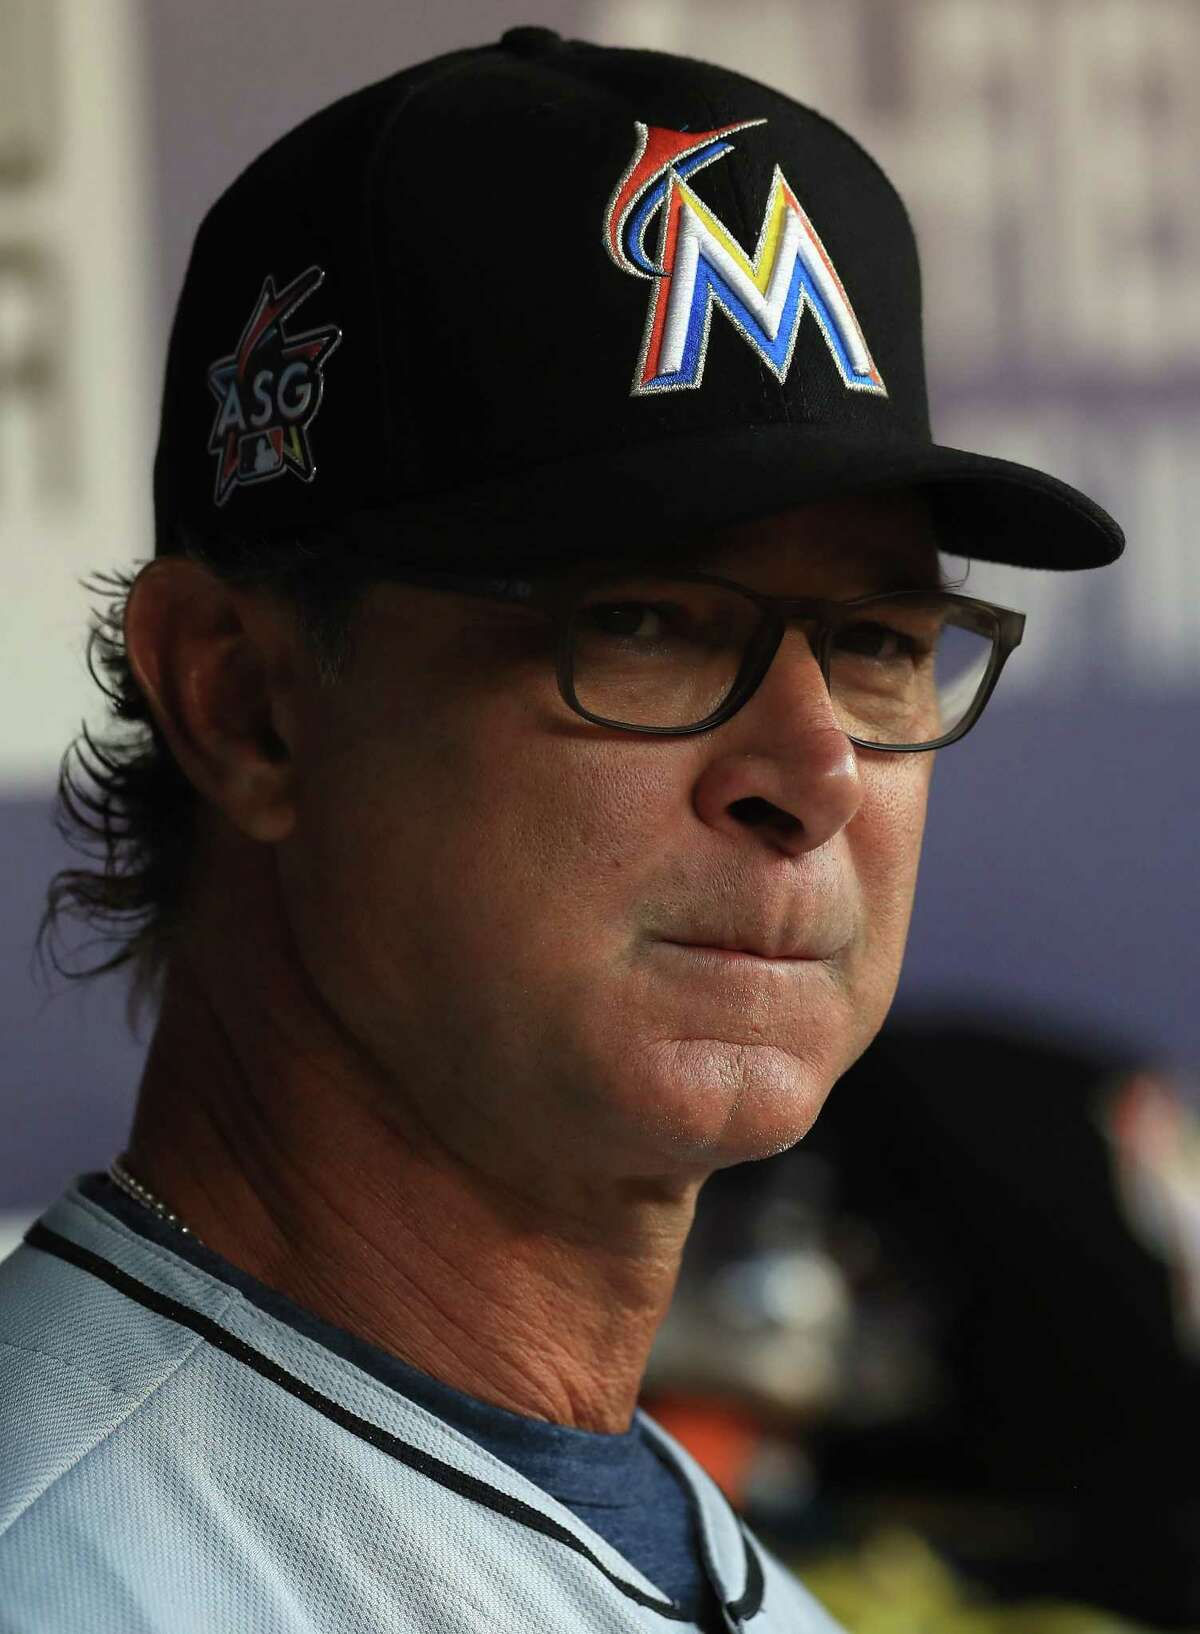 ARLINGTON, TX - JULY 25: Manager Don Mattingly #8 of the Miami Marlins in the first inning against the Texas Rangers at Globe Life Park in Arlington on July 25, 2017 in Arlington, Texas. (Photo by Ronald Martinez/Getty Images) ORG XMIT: 700011747